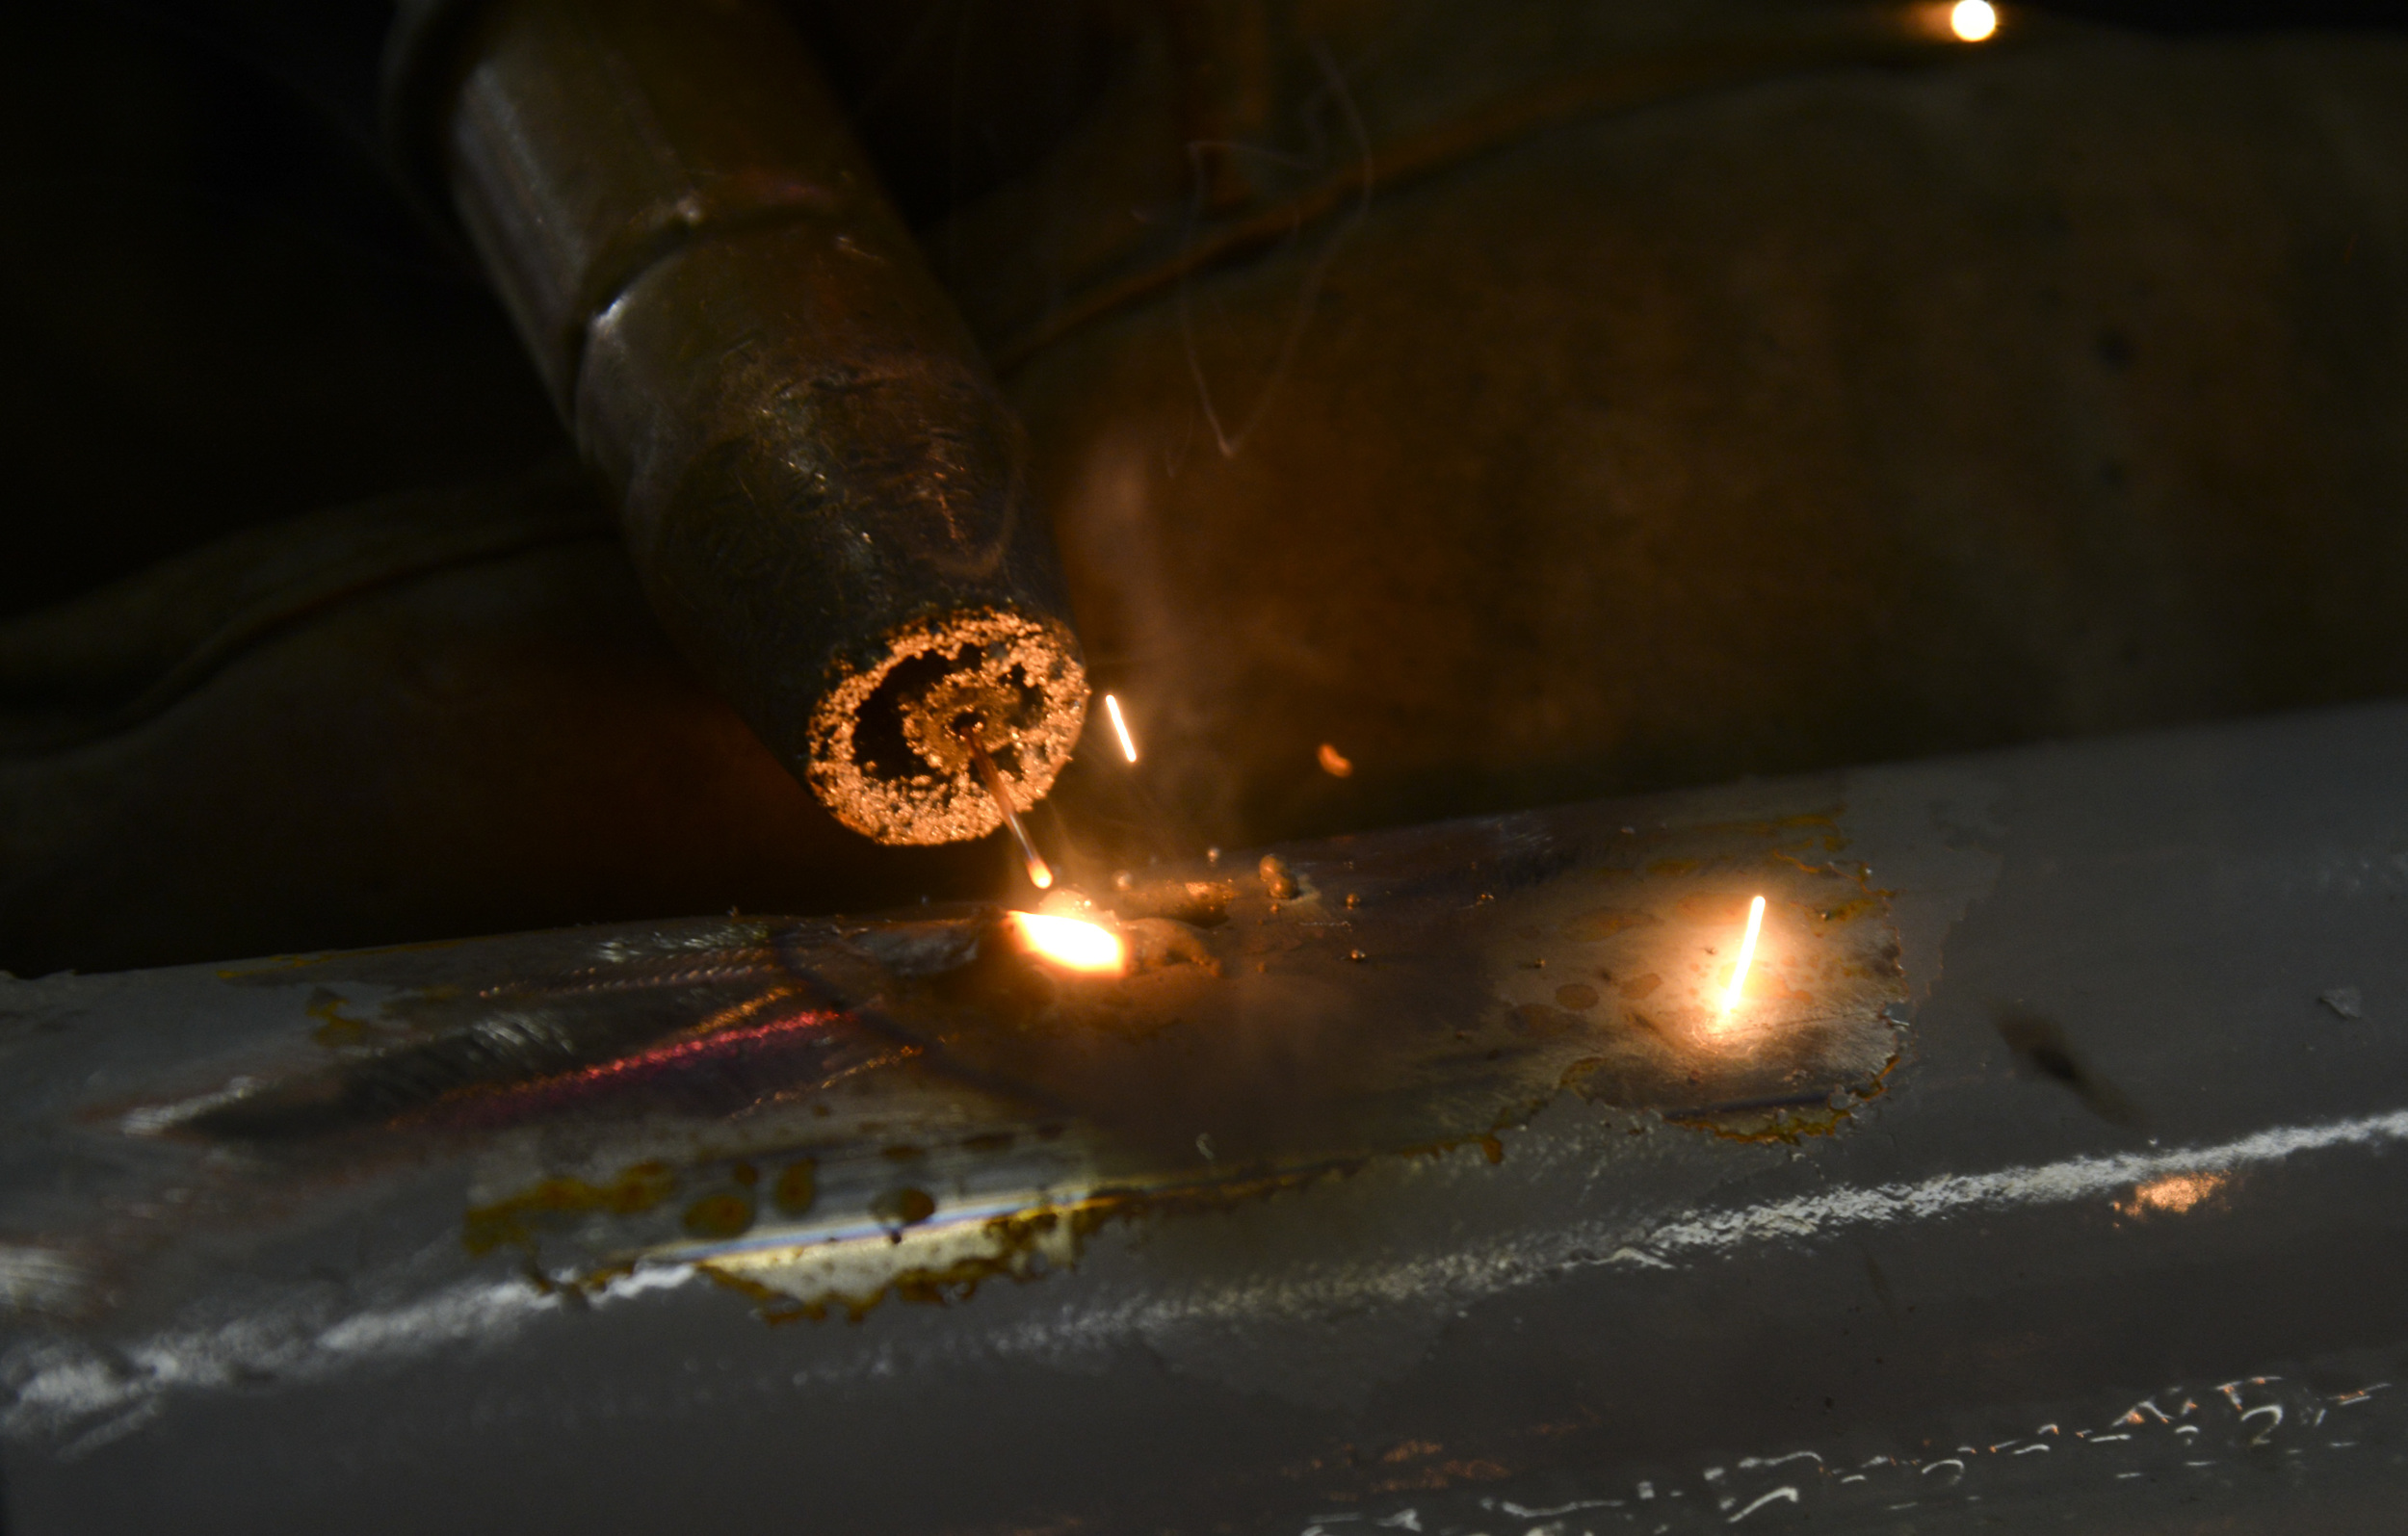 Airman 1st Class Curtis Doherty, 374th Maintenance Squadron aircraft metals technology journeyman, welds a post hole for a B-1 platform in the fabrication shop at Yokota Air Base, Japan, June 23, 2015. The metal technology shop works on 20 to 80 pieces of equipment each week. (U.S. Air Force photo by Senior Airman David Owsianka/Released)